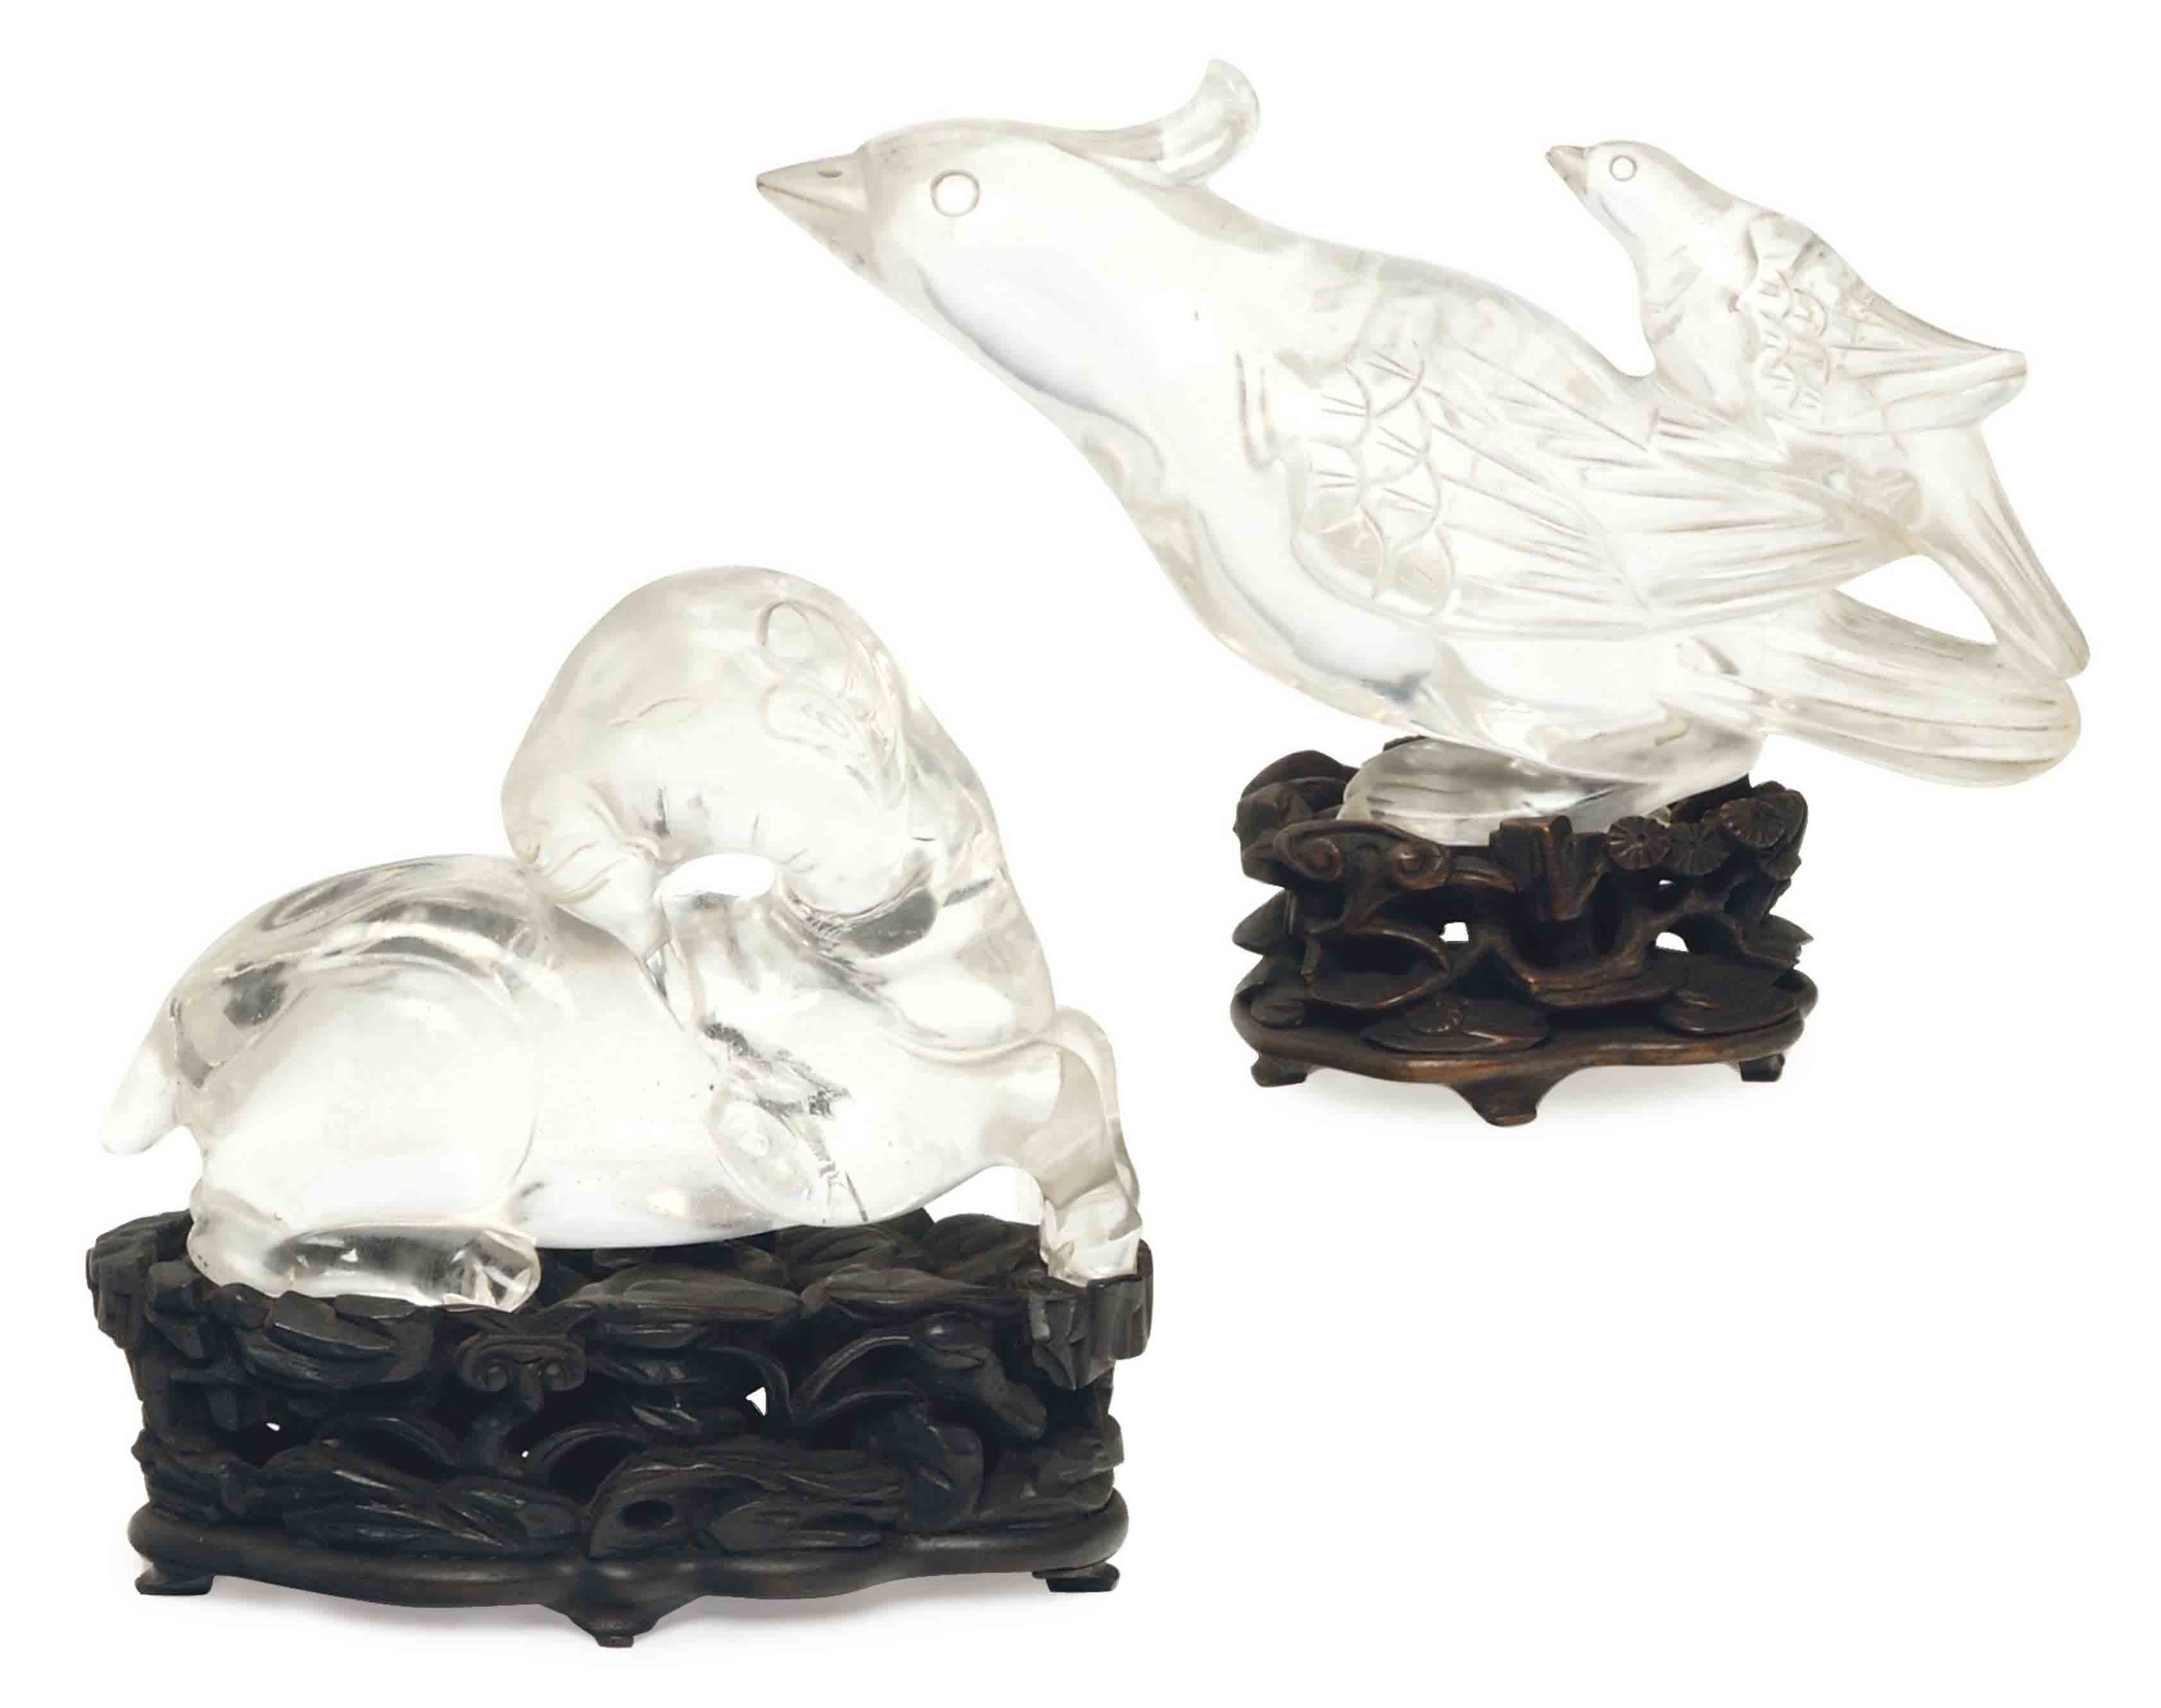 A CHINESE CARVED ROCK CRYSTAL FIGURE OF A RAM, AND A ROCK CRYSTAL FIGURE OF TWO BIRDS,